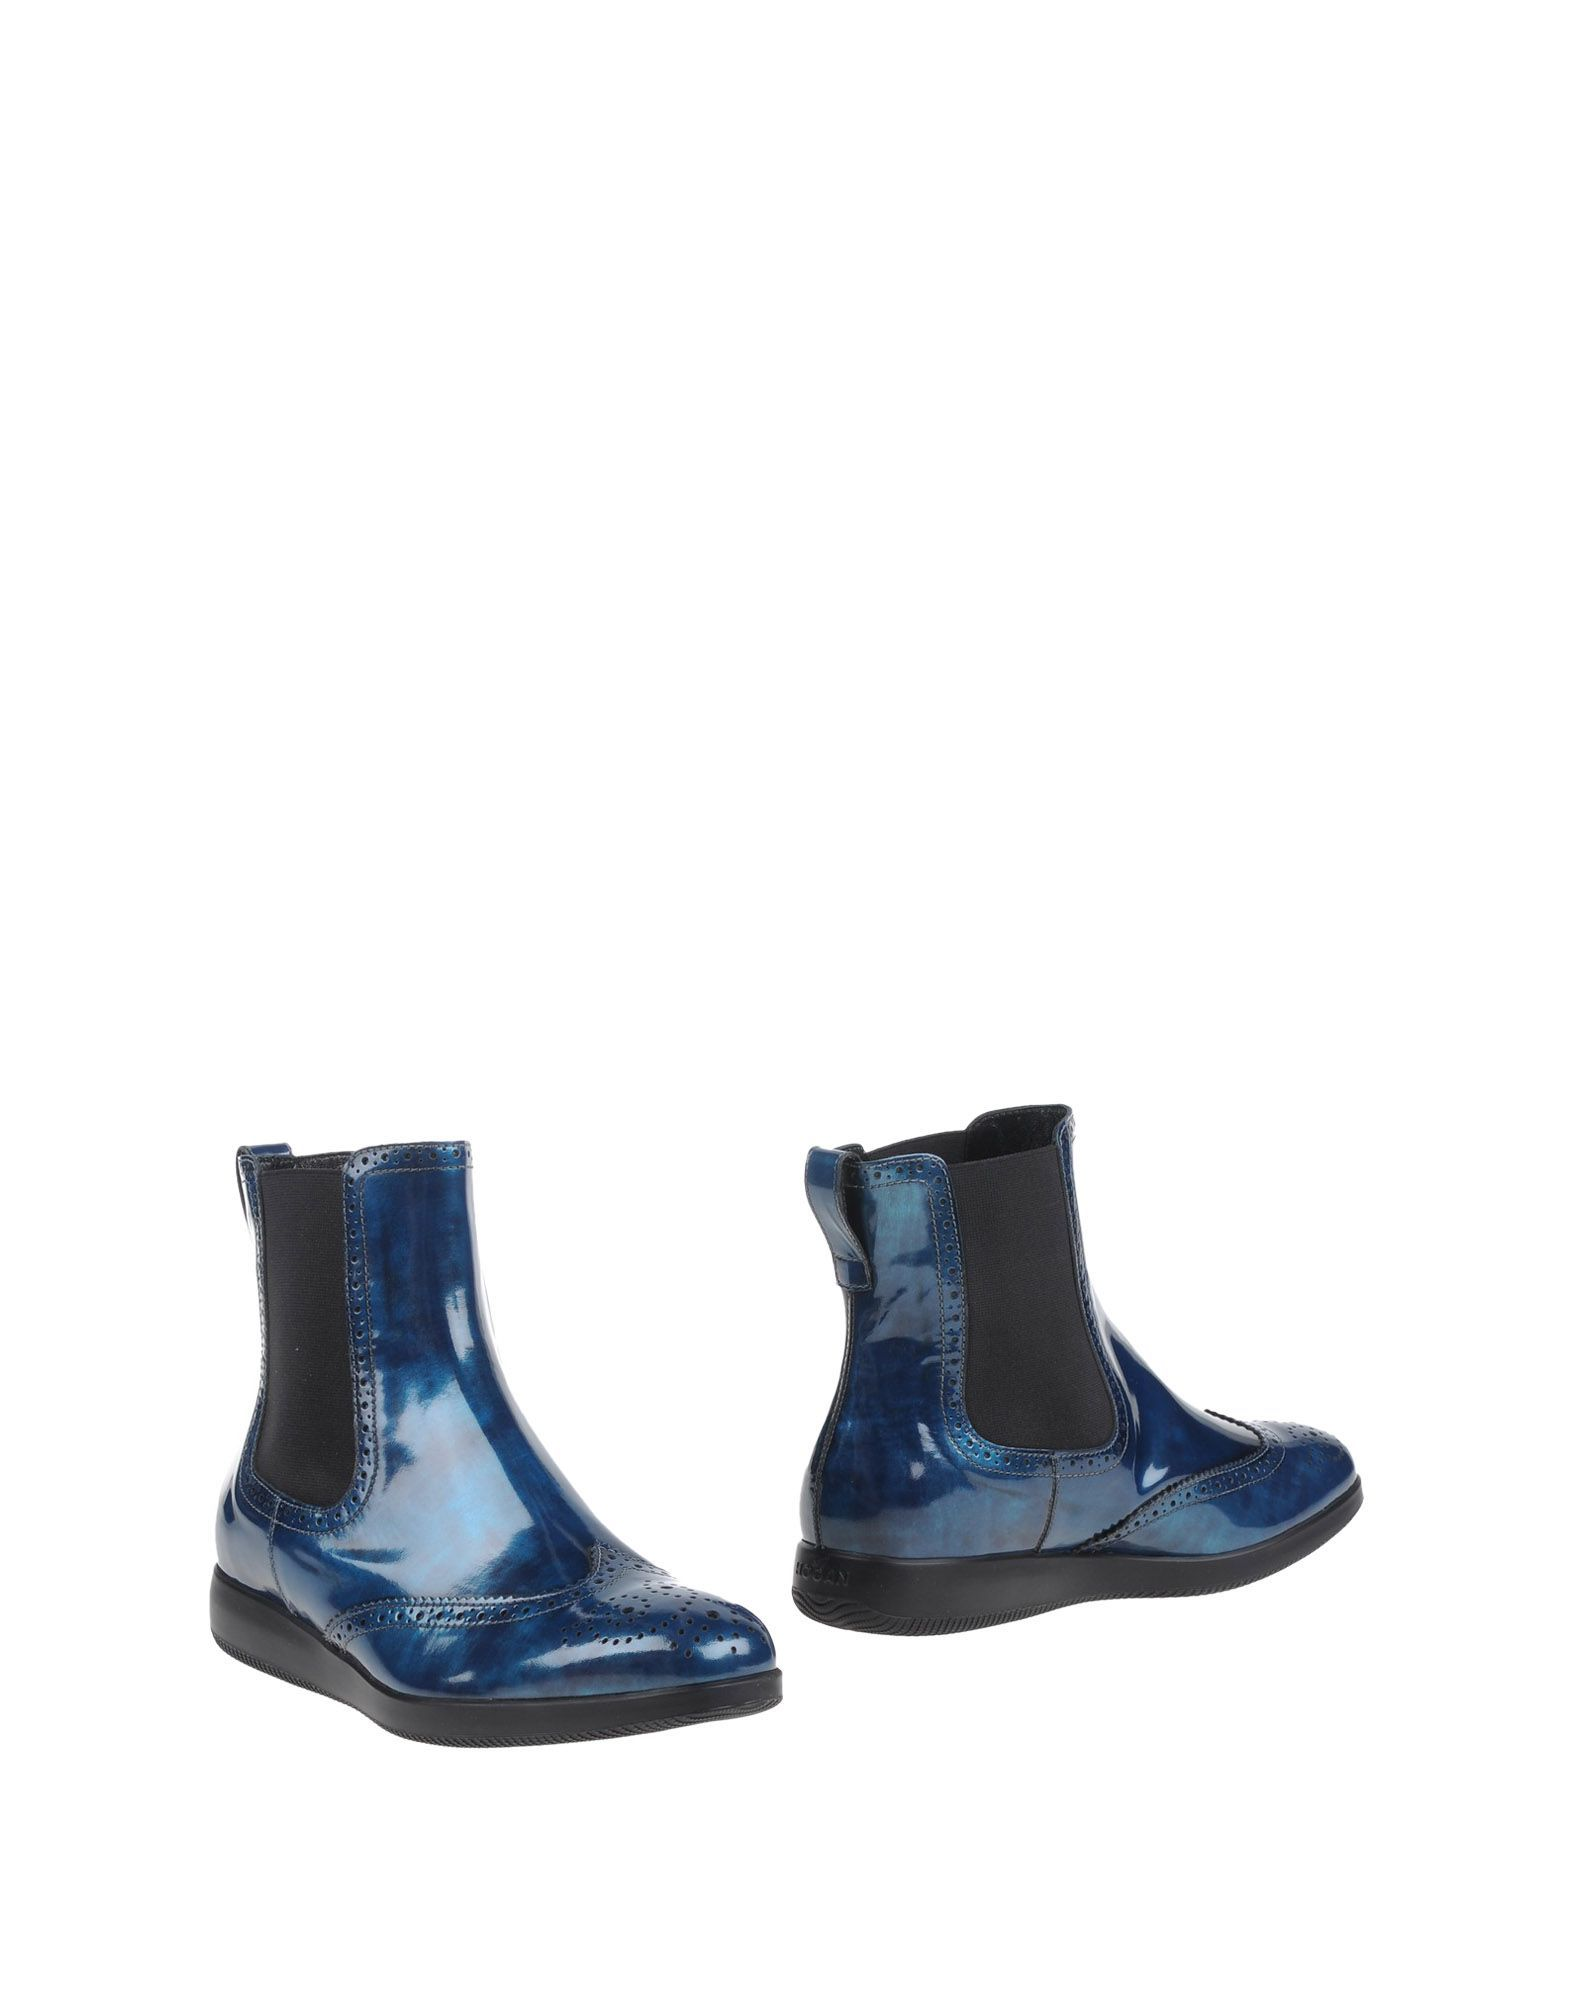 Hogan Blue Leather Ankle Boots